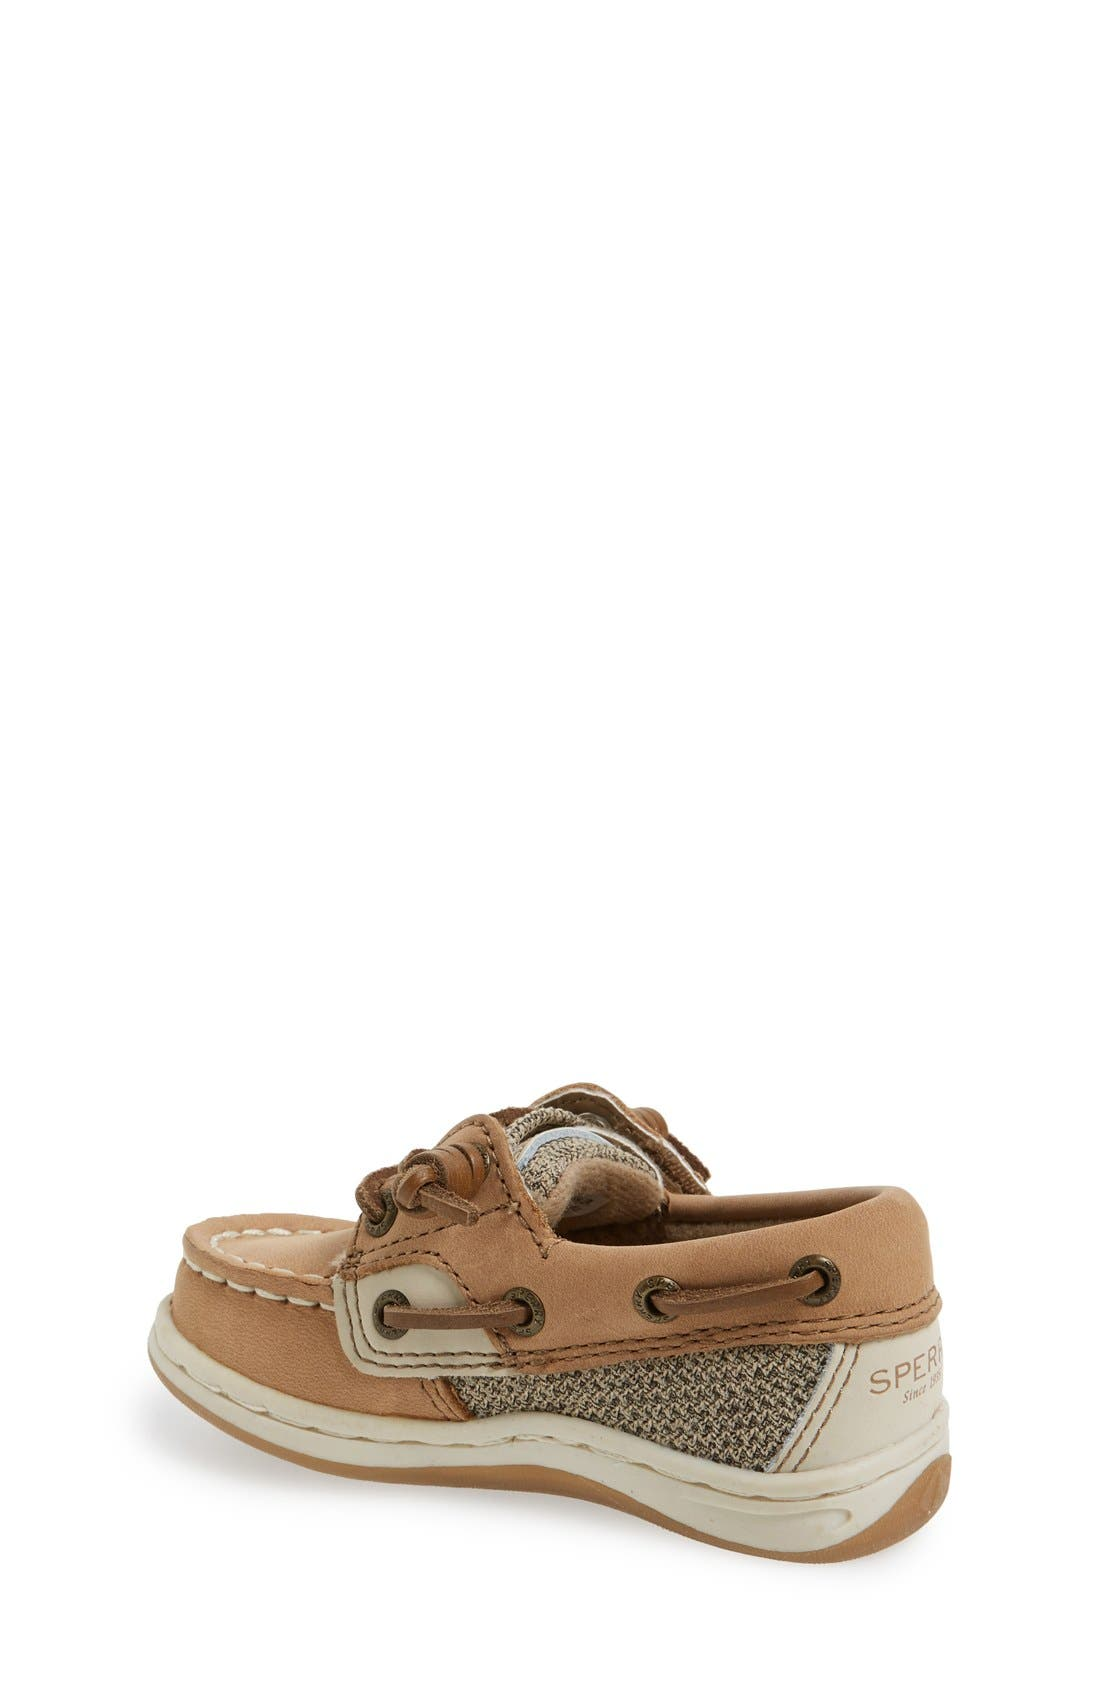 SPERRY KIDS, 'Songfish' Boat Shoe, Alternate thumbnail 4, color, LINEN/ OAT LEATHER